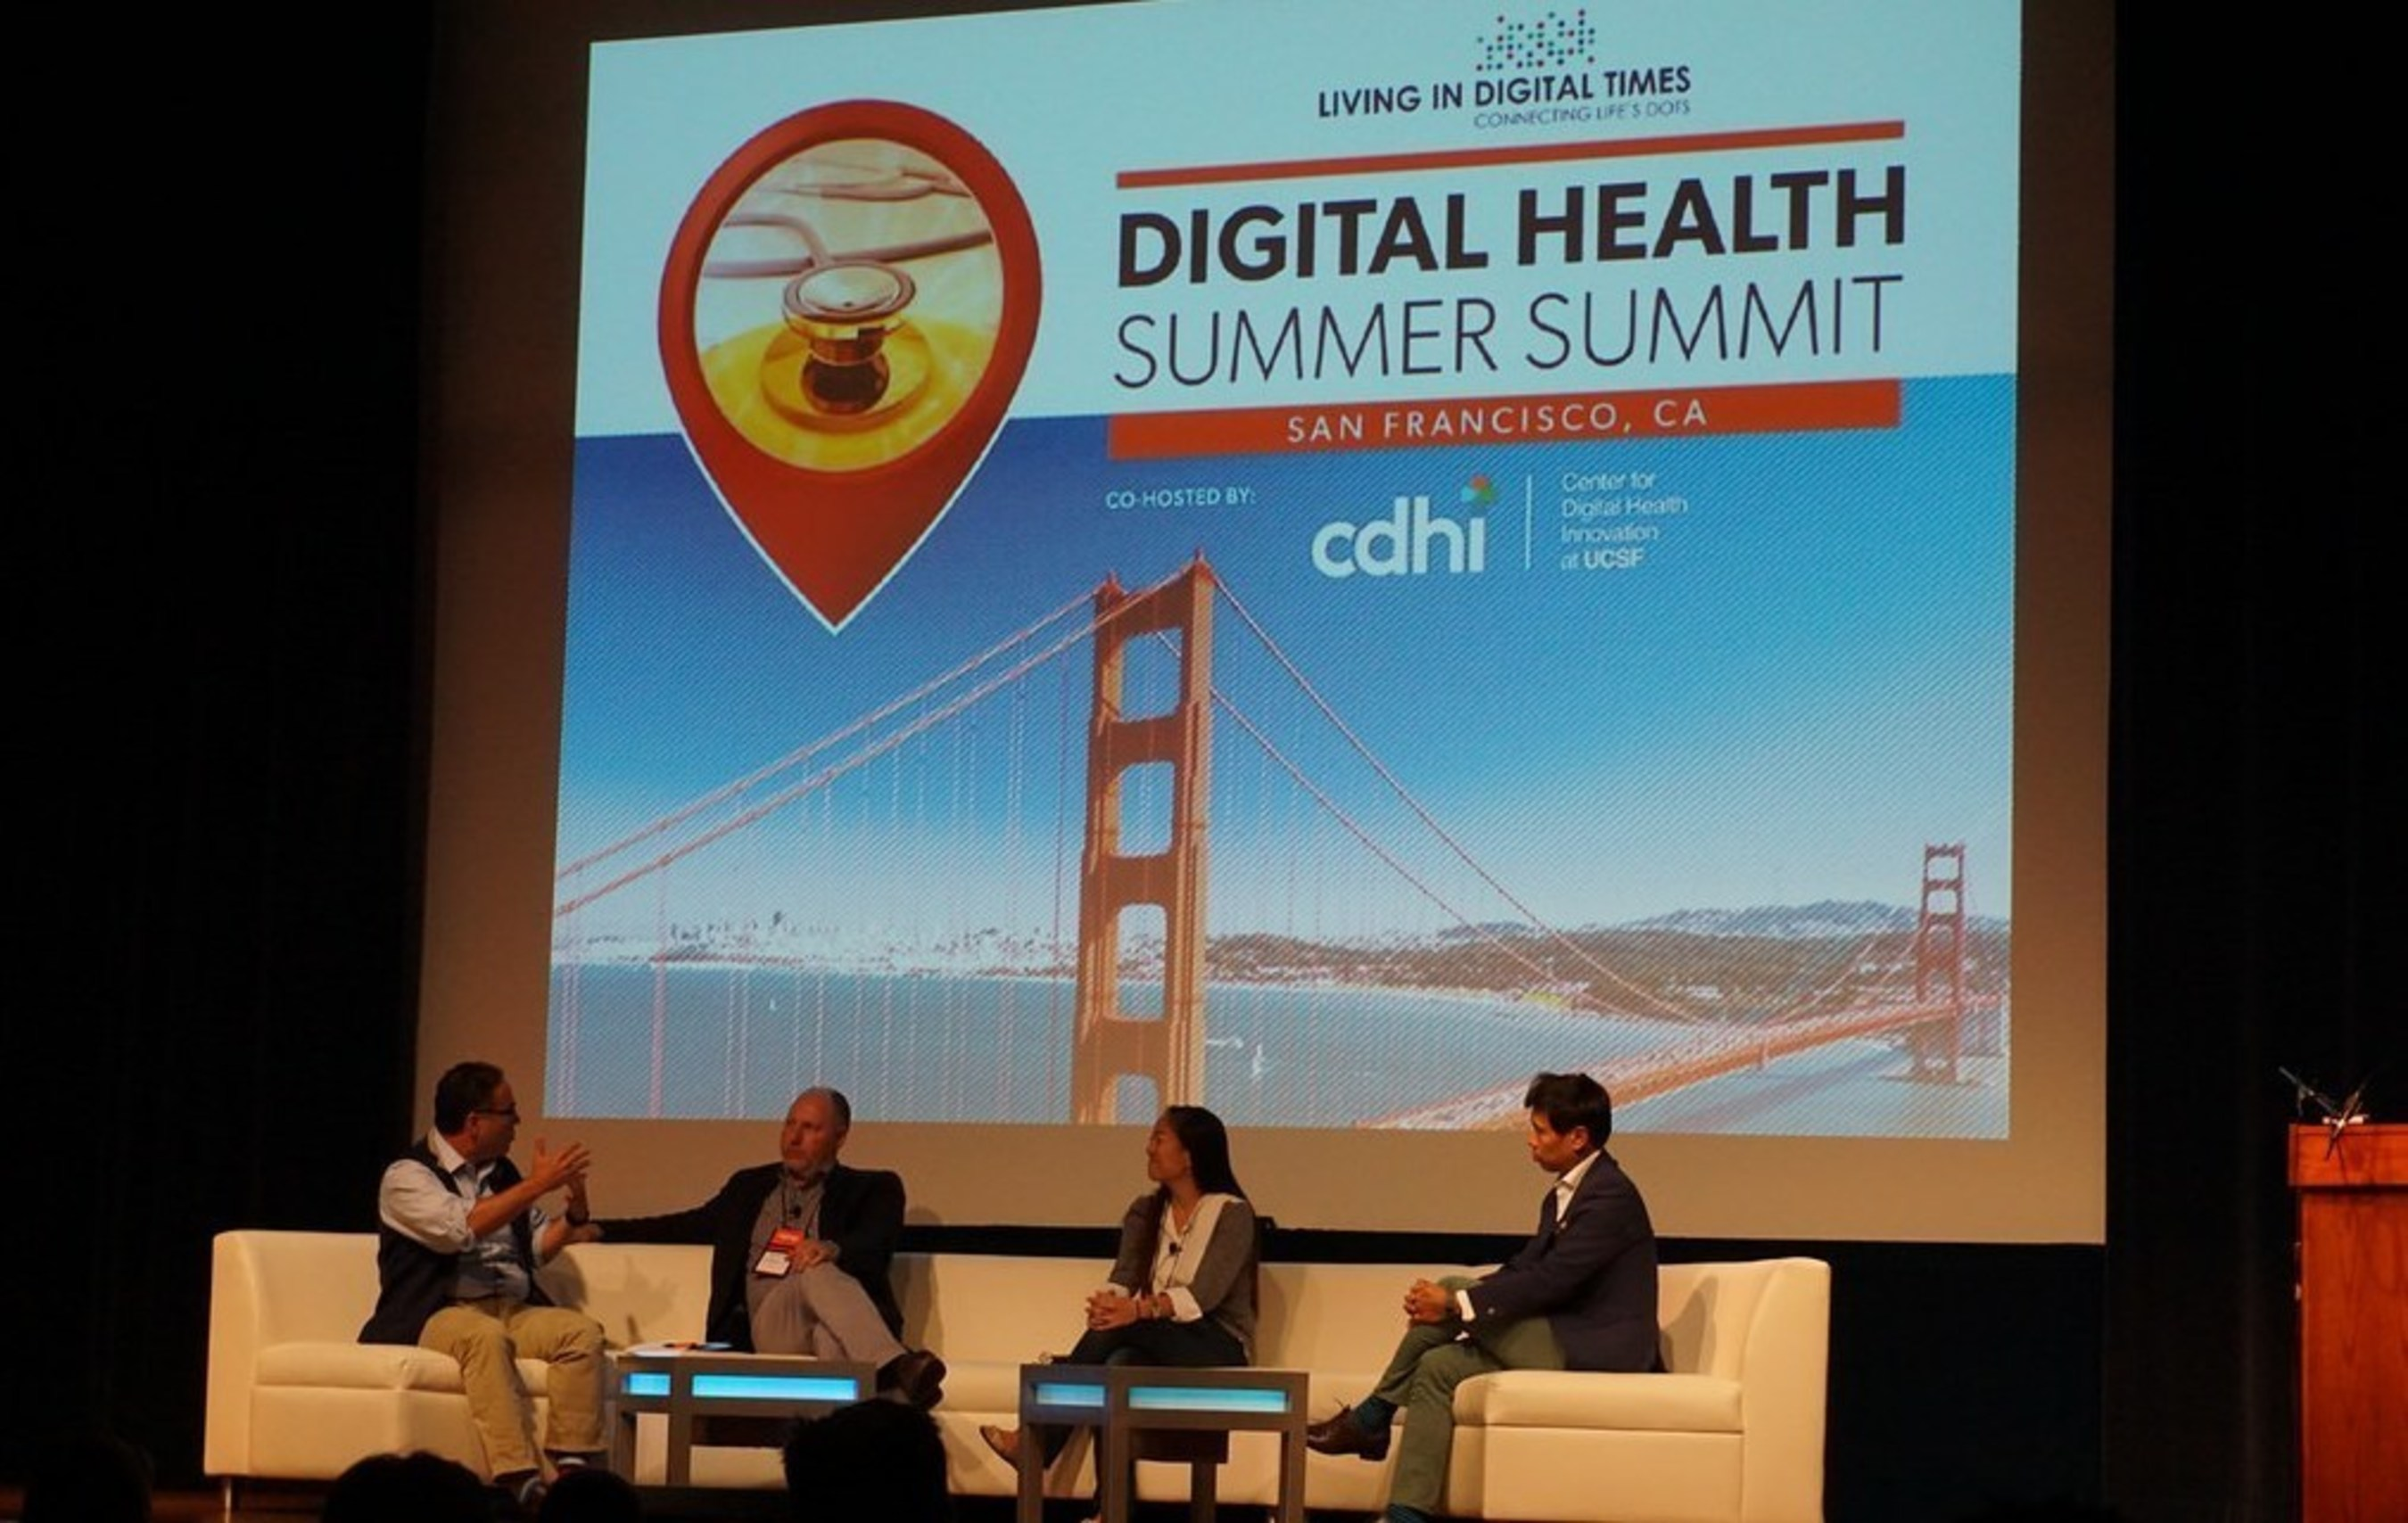 The Digital Health Summer Summit: Highlights of the Transformation of Healthcare